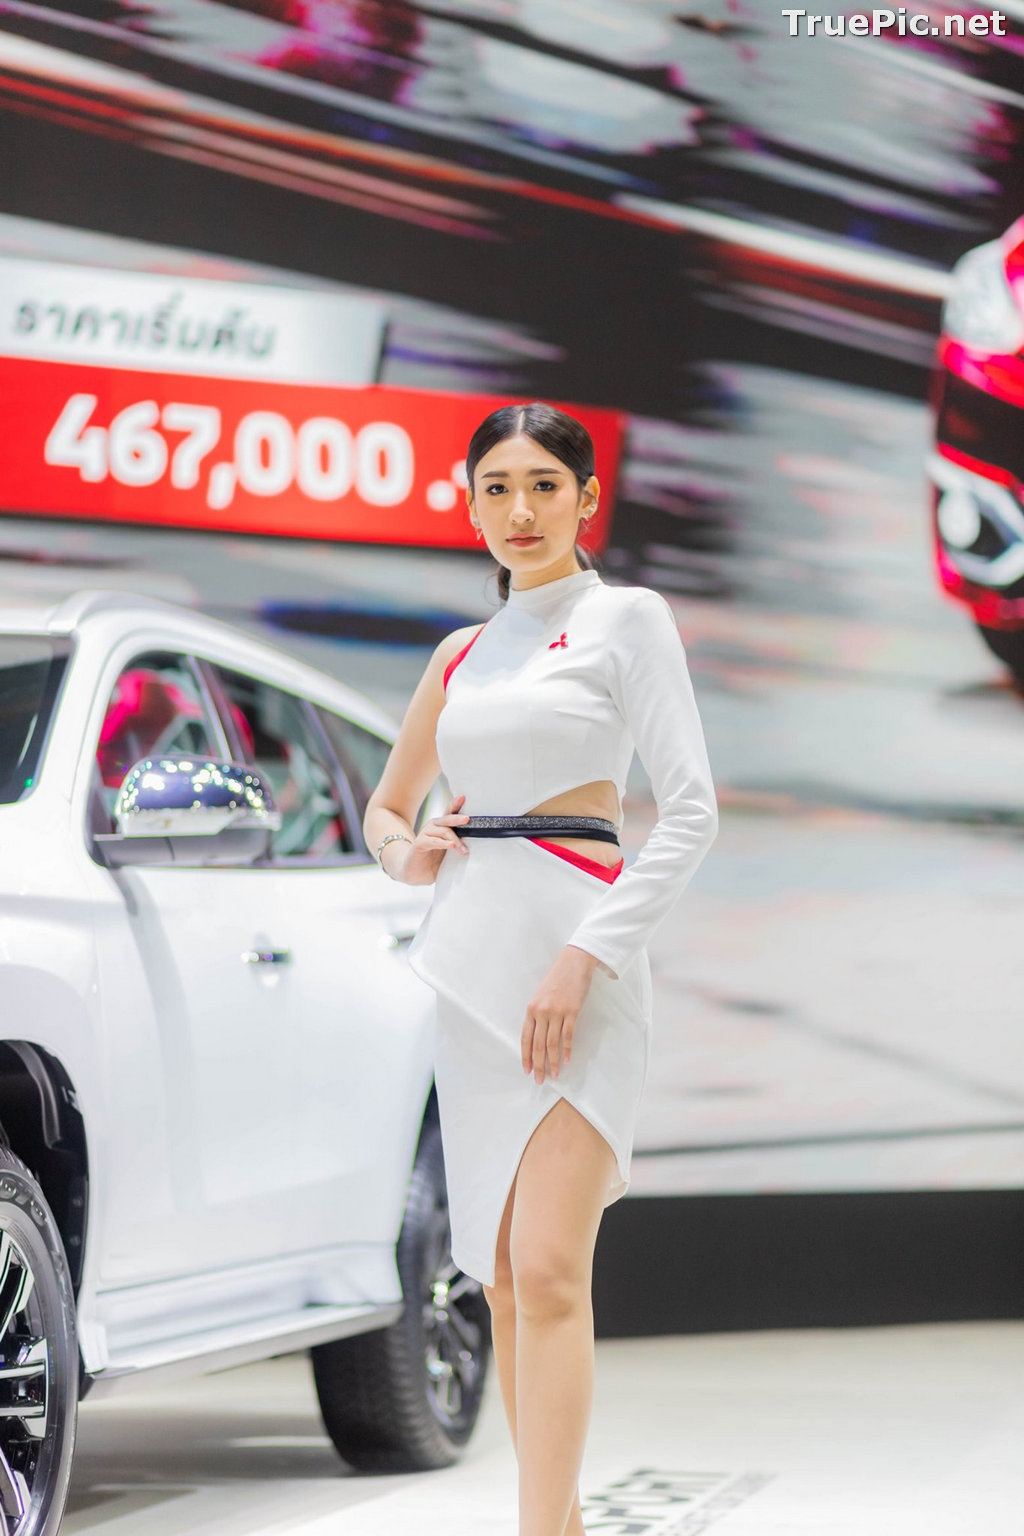 Image Thailand Racing Model at BIG Motor Sale 2019 - TruePic.net - Picture-7